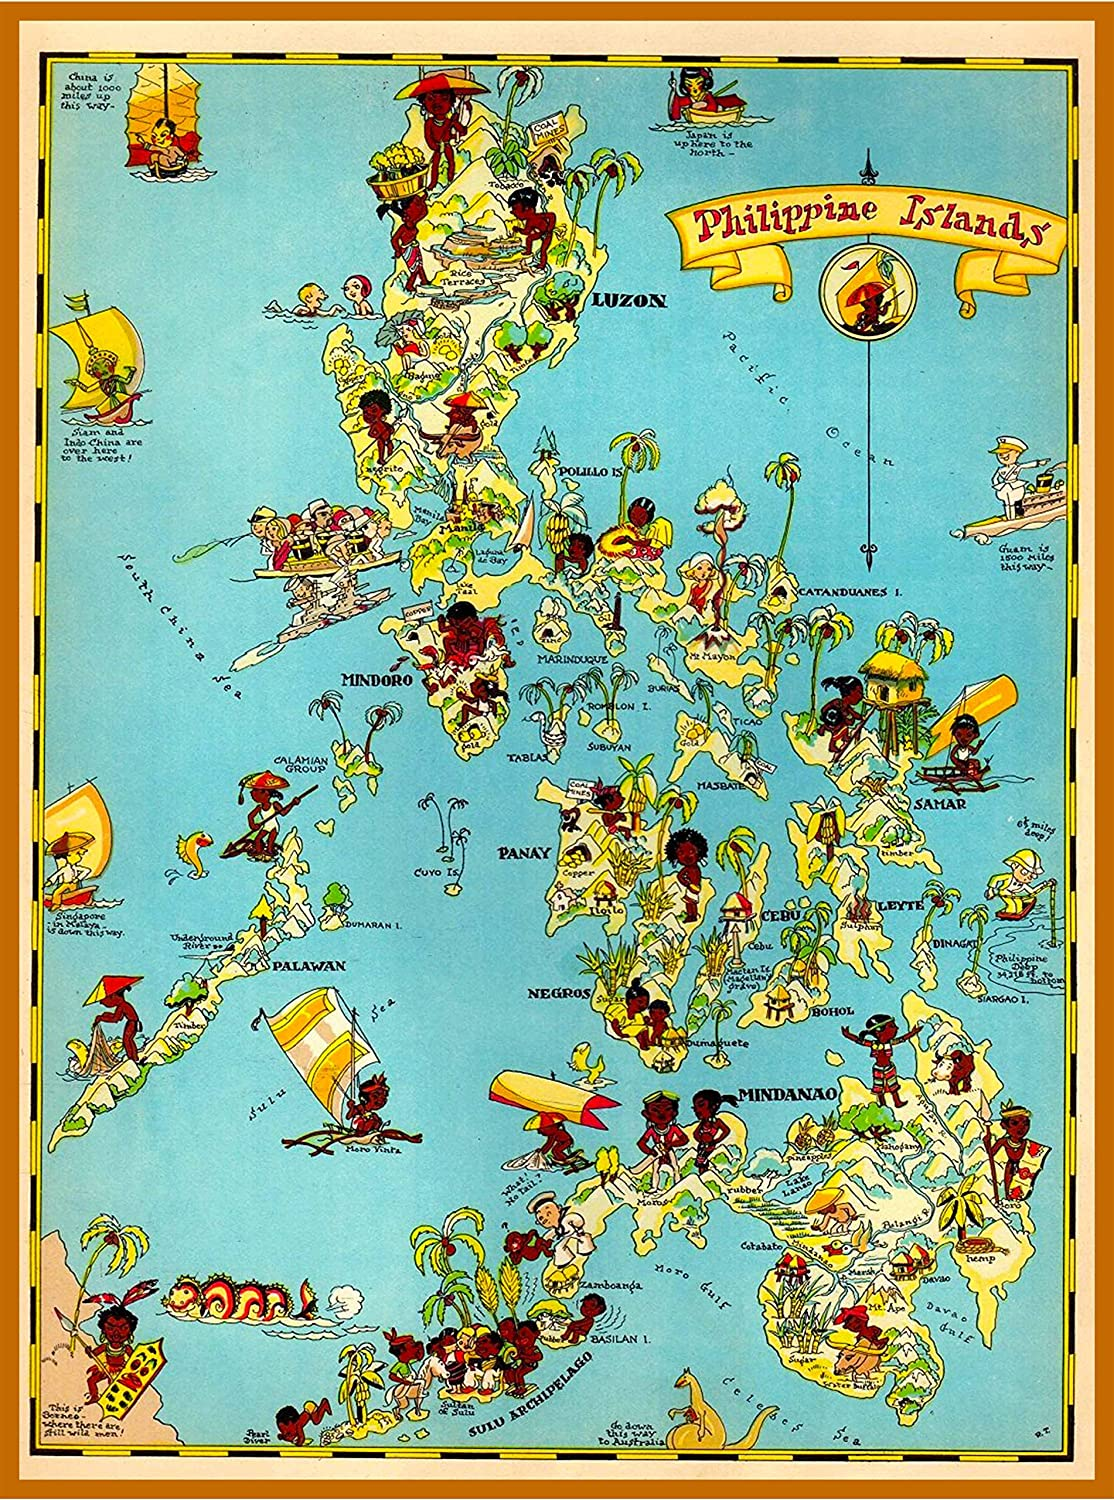 A SLICE IN TIME 1940s Map of The The Philippines Vintage Travel Home Collectible Wall Decor Advertisement Art Poster Print. 10 x 13.5 inches